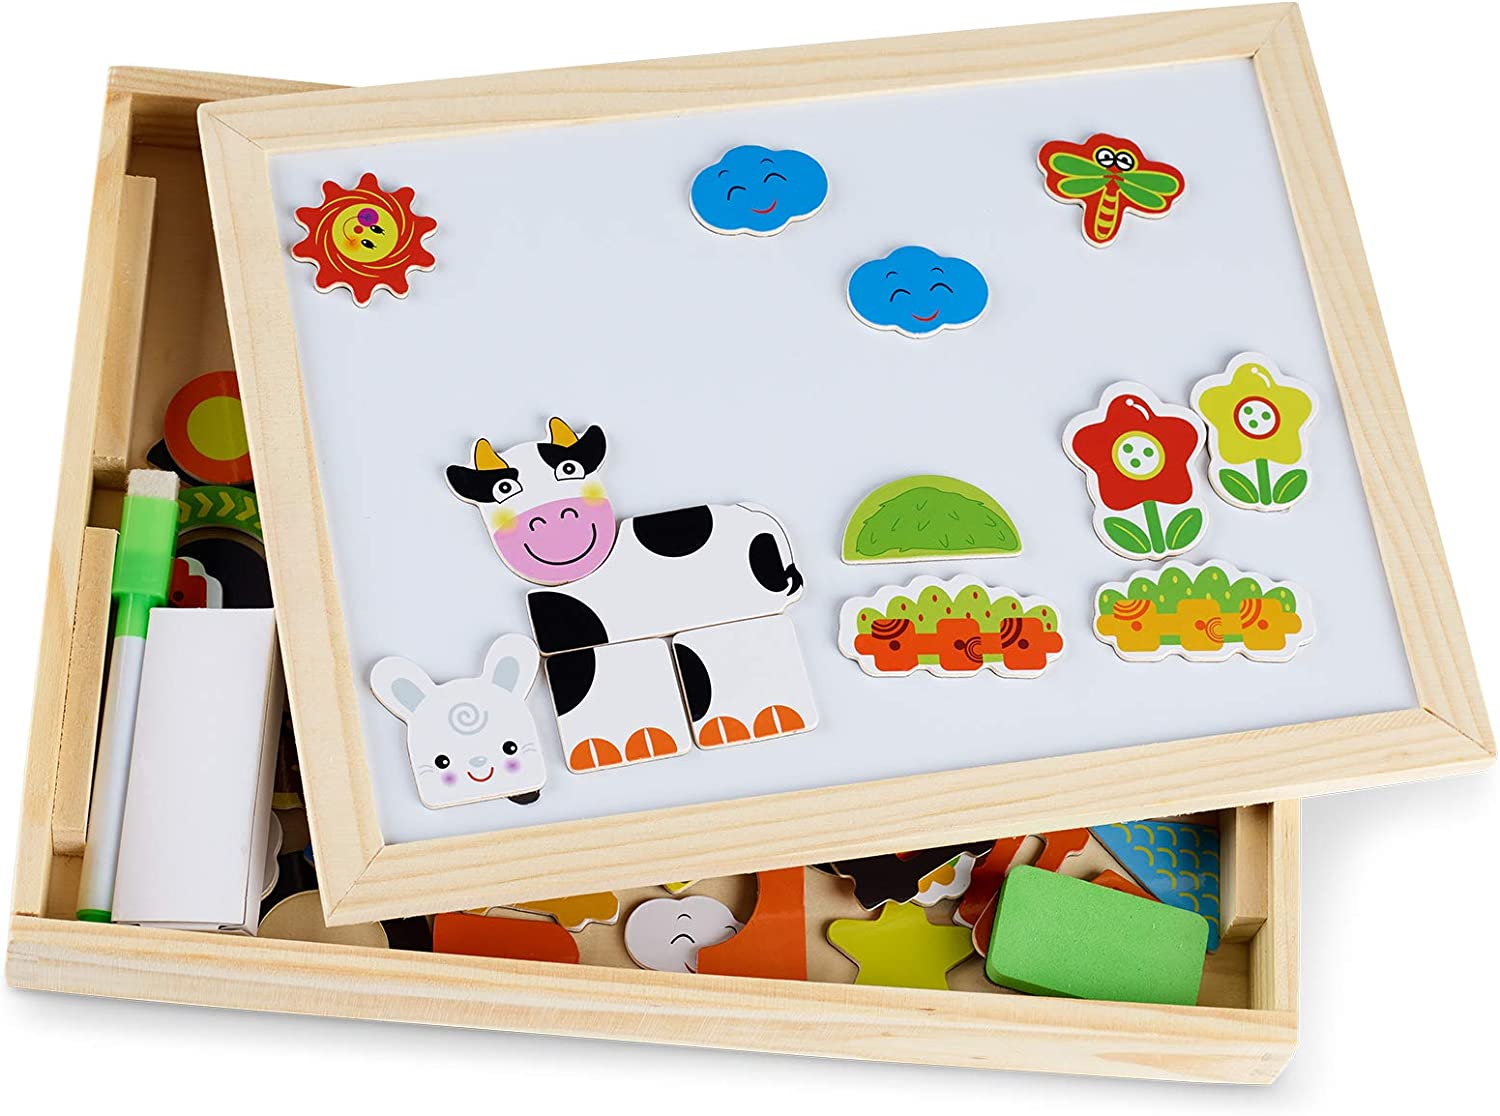 Tanness Wooden Magnetic Board Puzzle Games Double Sided Jigsaw Farm Pattern Drawing Easel Blackboard Educational Wood Toys for Boys Girls Kids Toddler Over 3 Year Olds